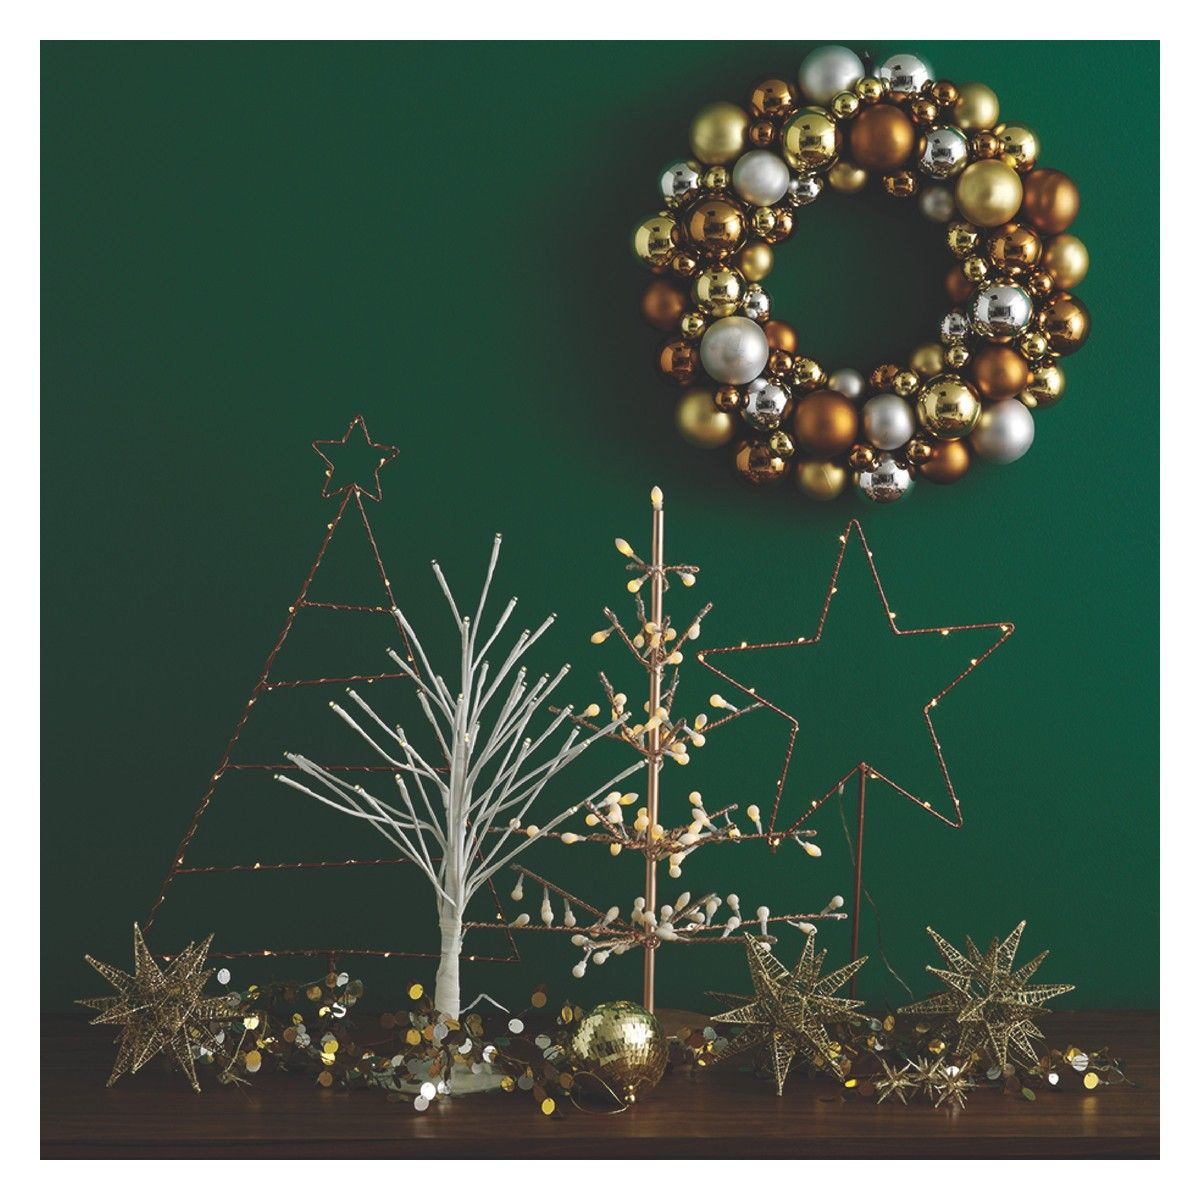 Habitat Christmas Trees: ANNGARSK Metallic Christmas Wreath